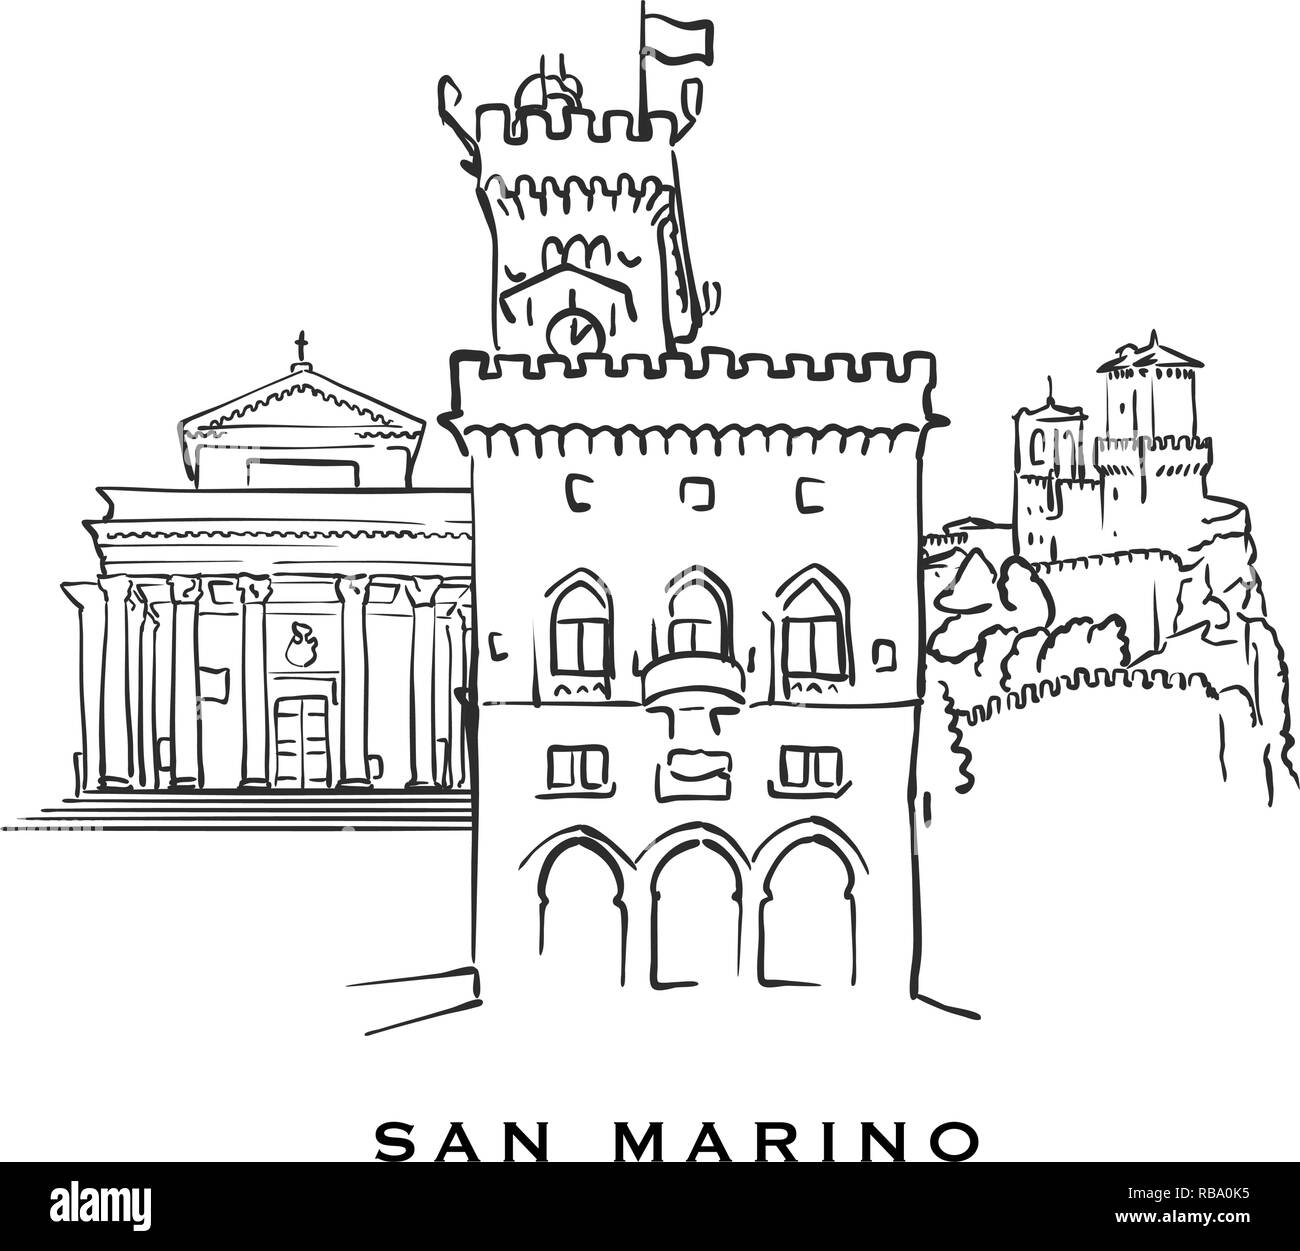 San Marino famous architecture. Outlined vector sketch separated on white background. Architecture drawings of all European capitals. - Stock Vector